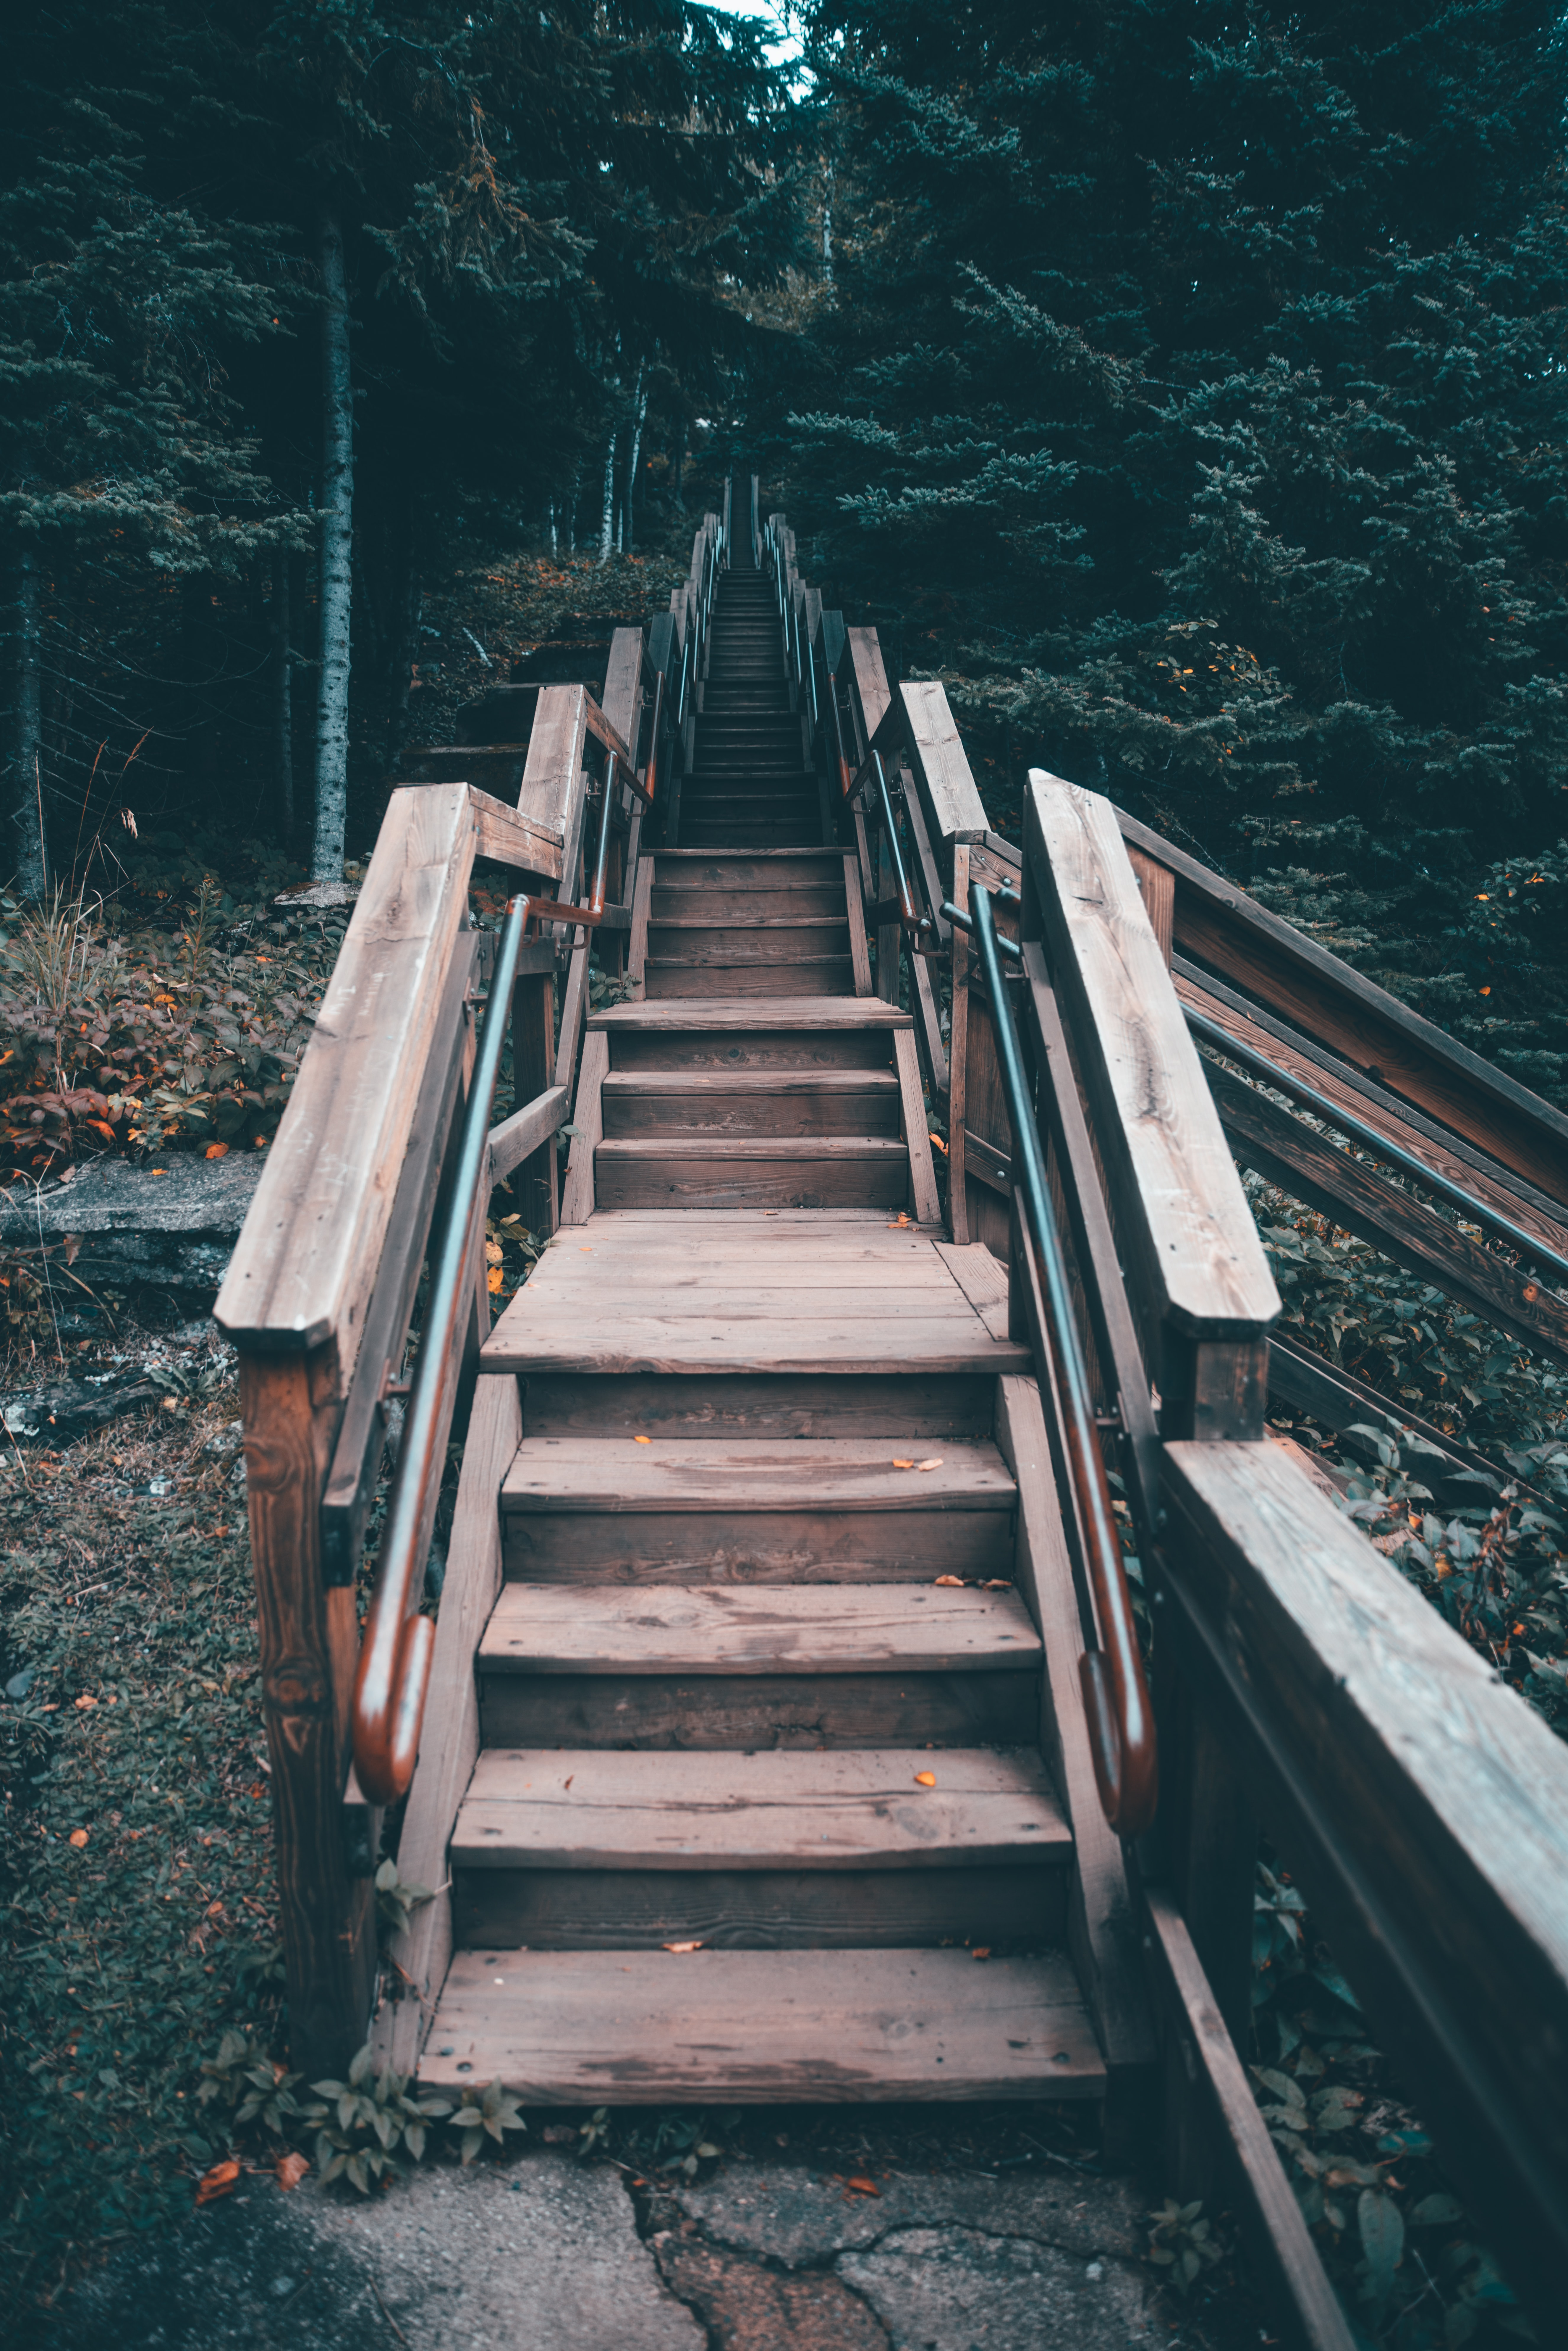 brown wooden stairs between green trees at daytime